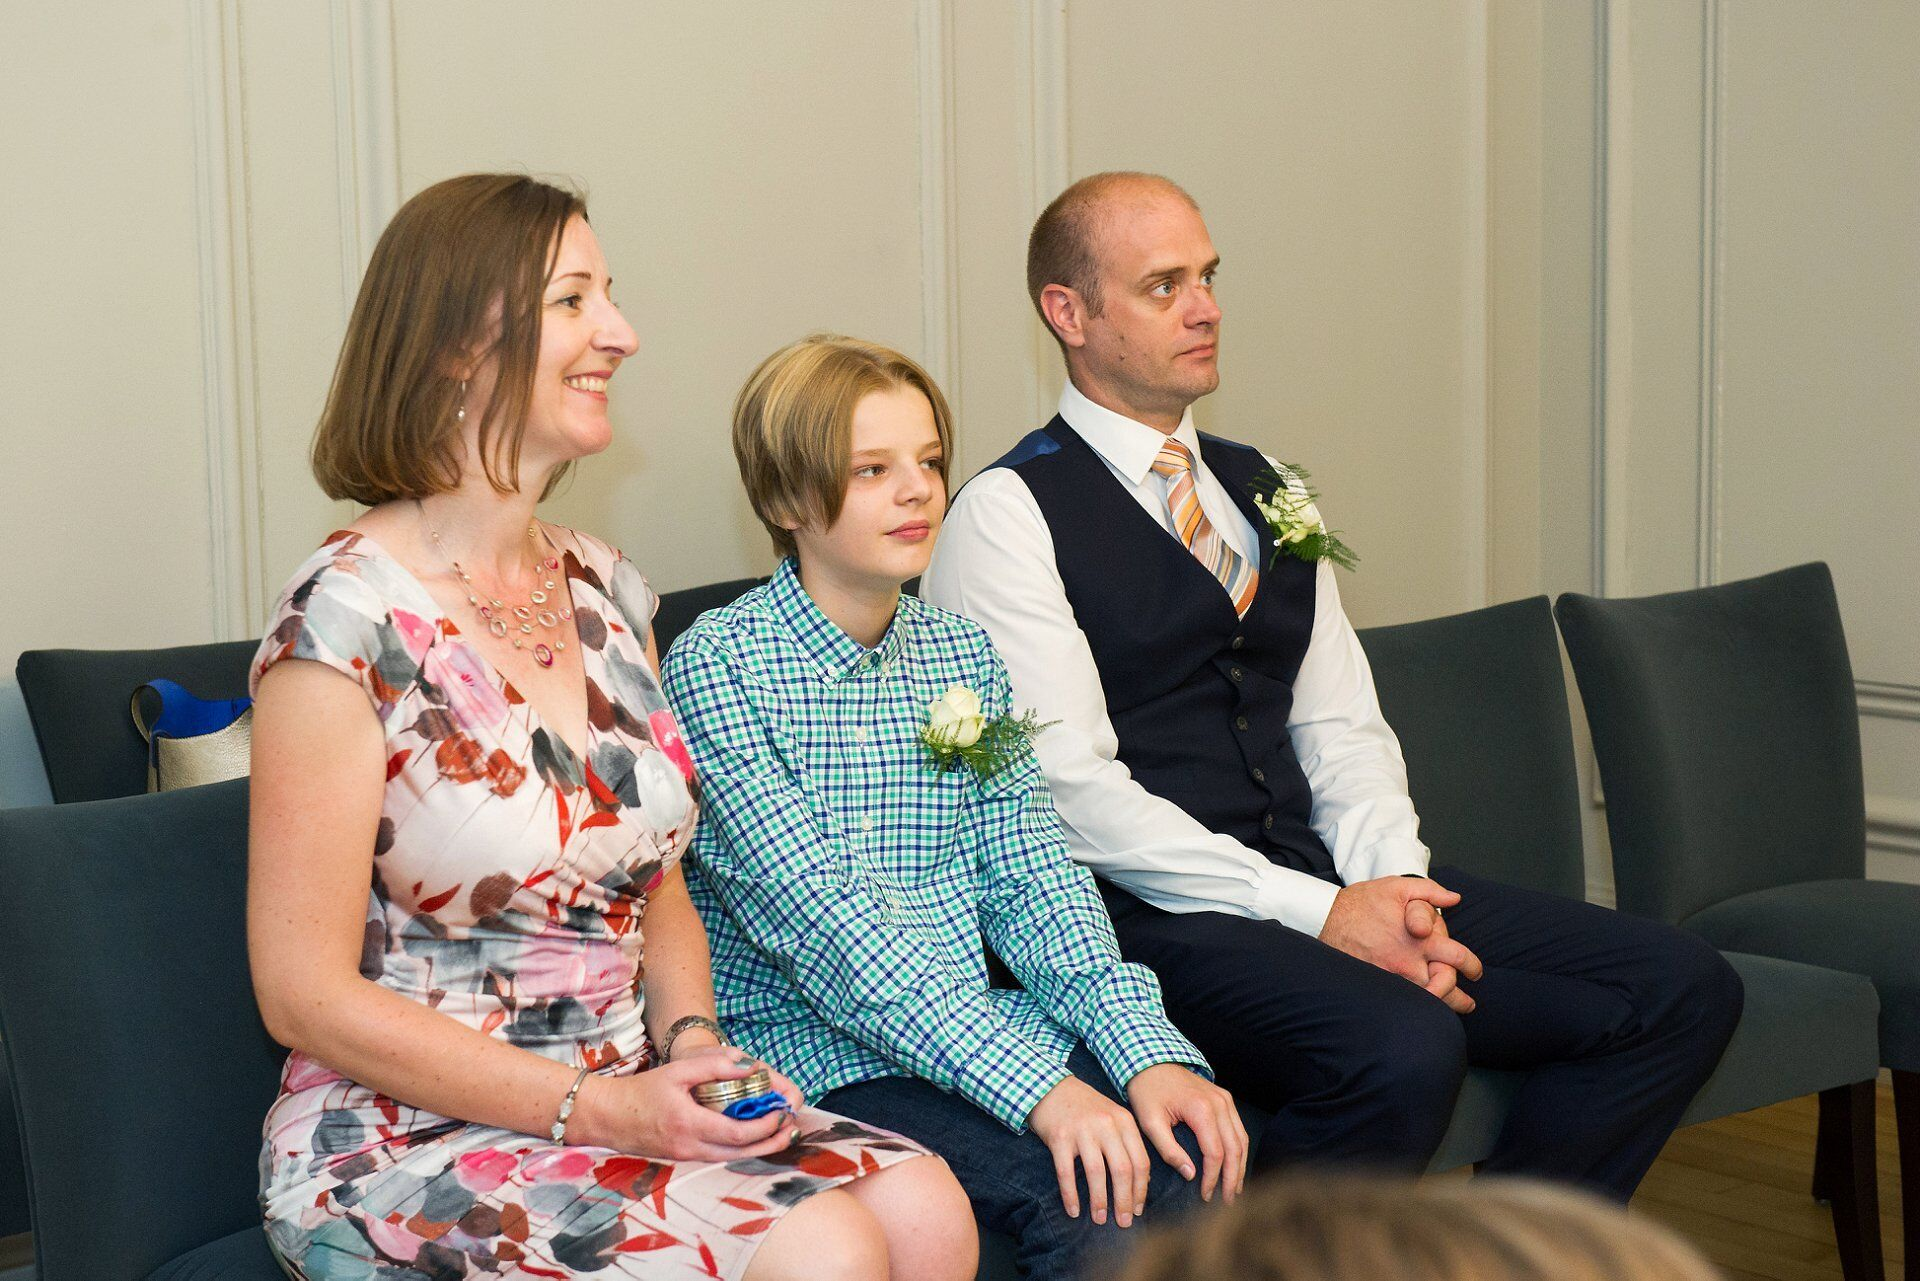 guests at soho room civil wedding ceremony watching bride and groom getting married